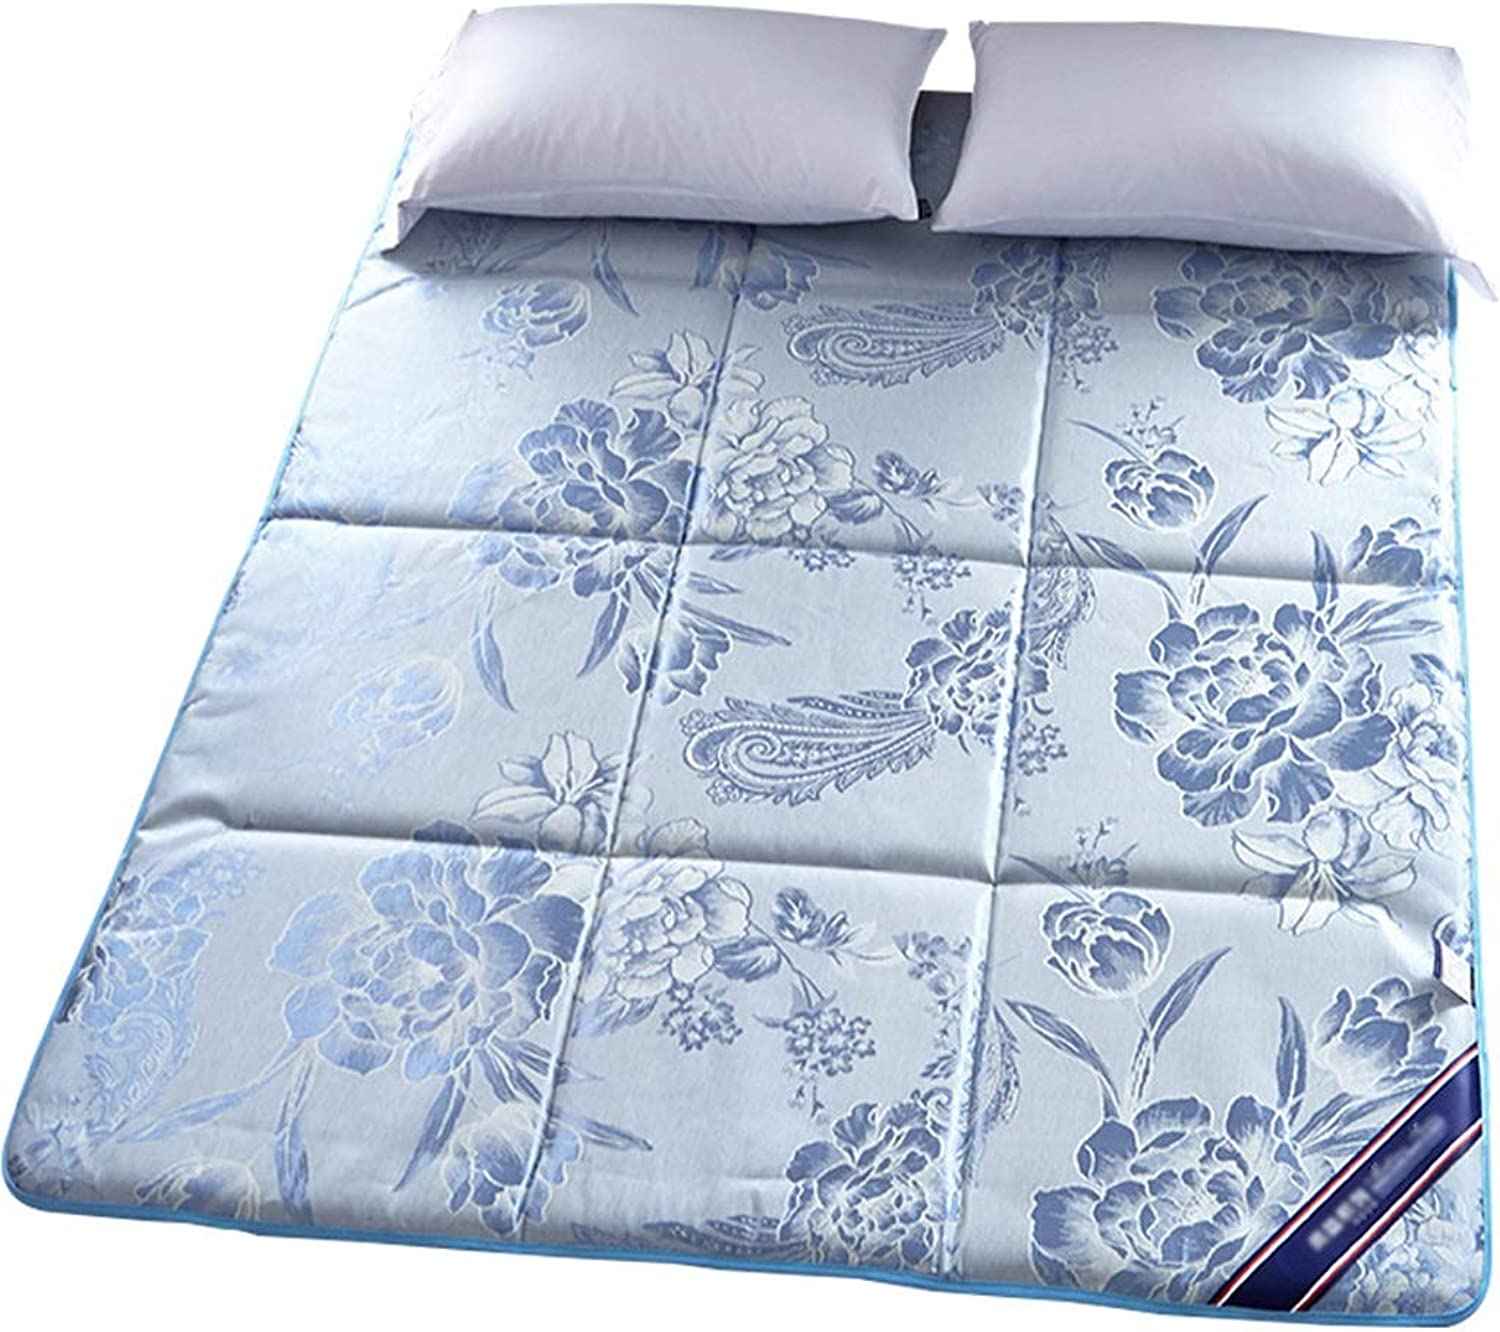 Mattress Topper Pad Summer Cool Ice Silk Breathable Non-Slip Predection Pad Thin Bed Pad Floor Mat (color   bluee, Size   0.9×2m)